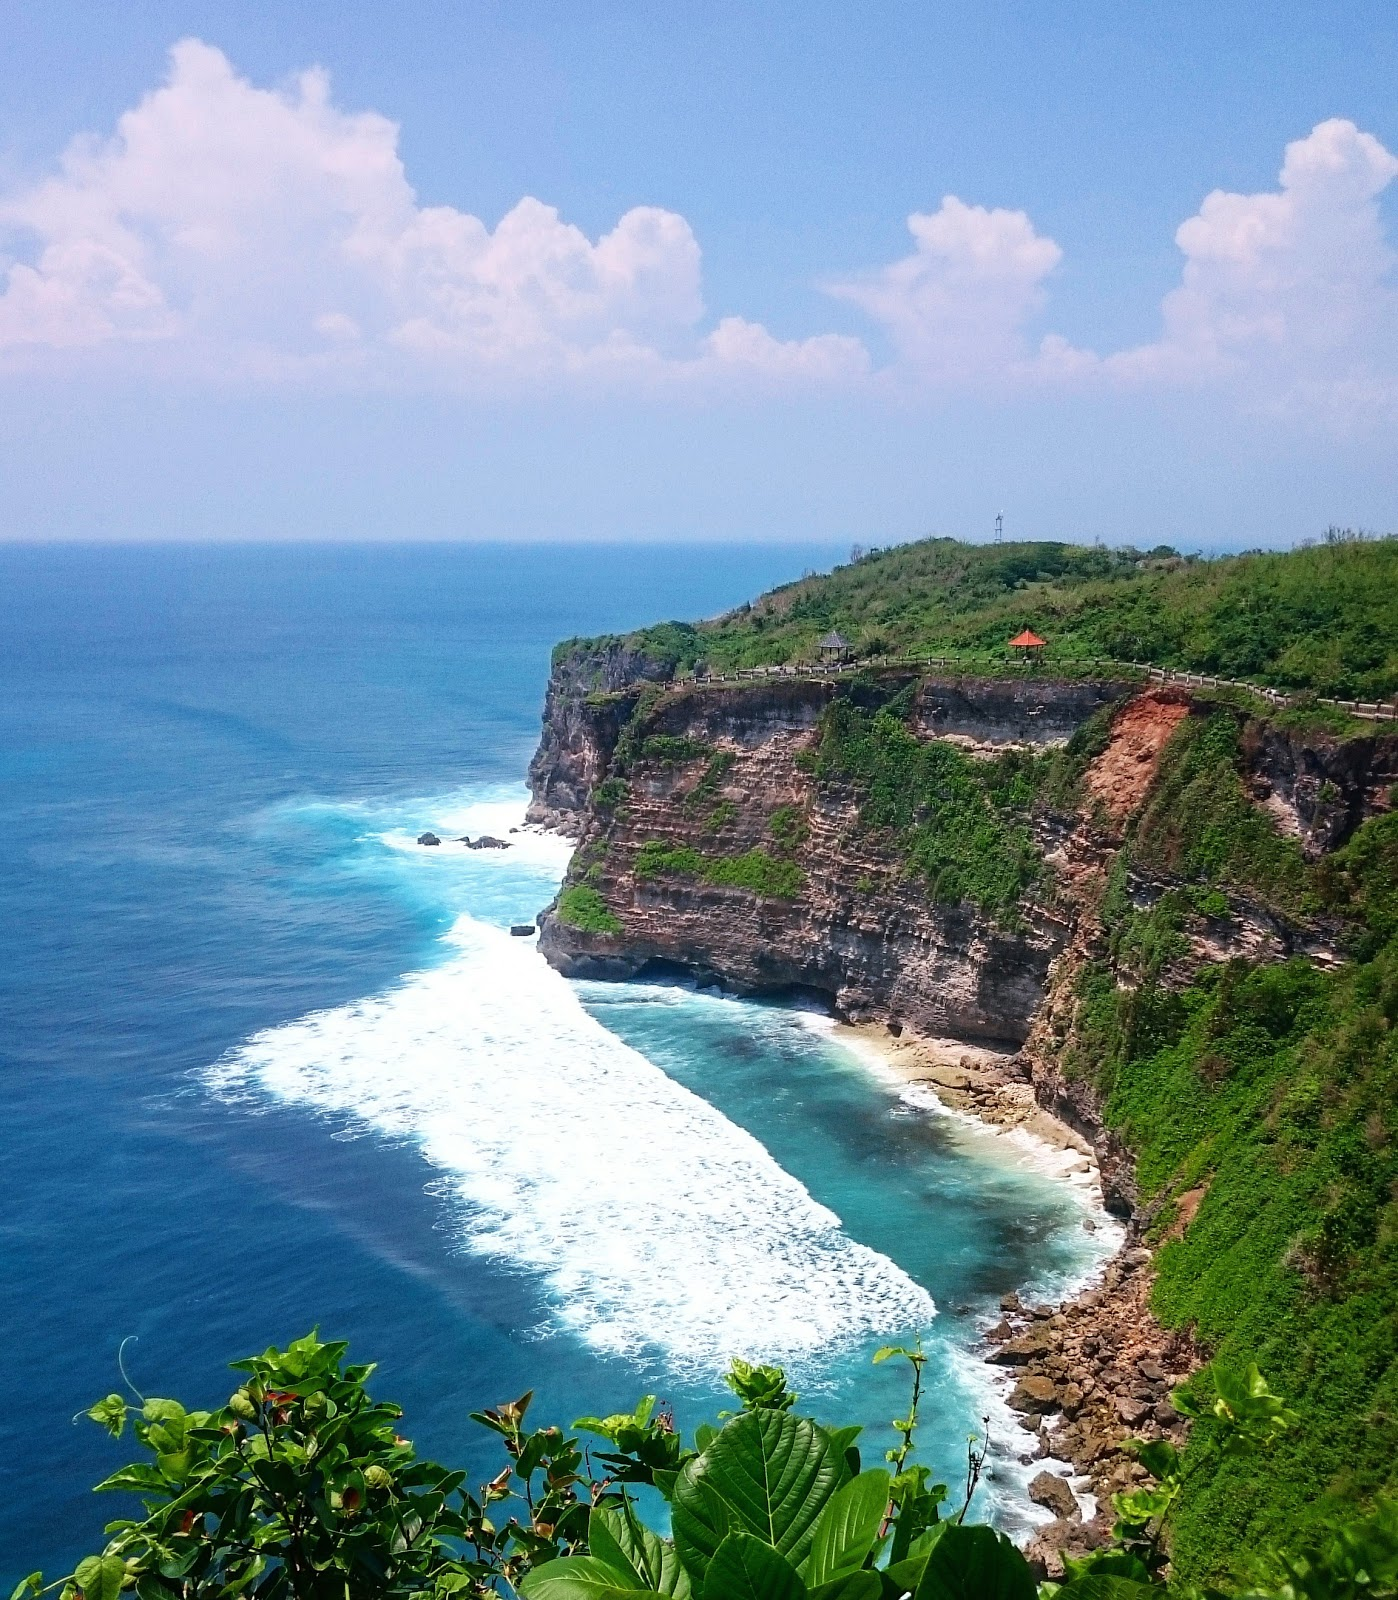 The view from Uluwatu Temple in Bali, Indonesia